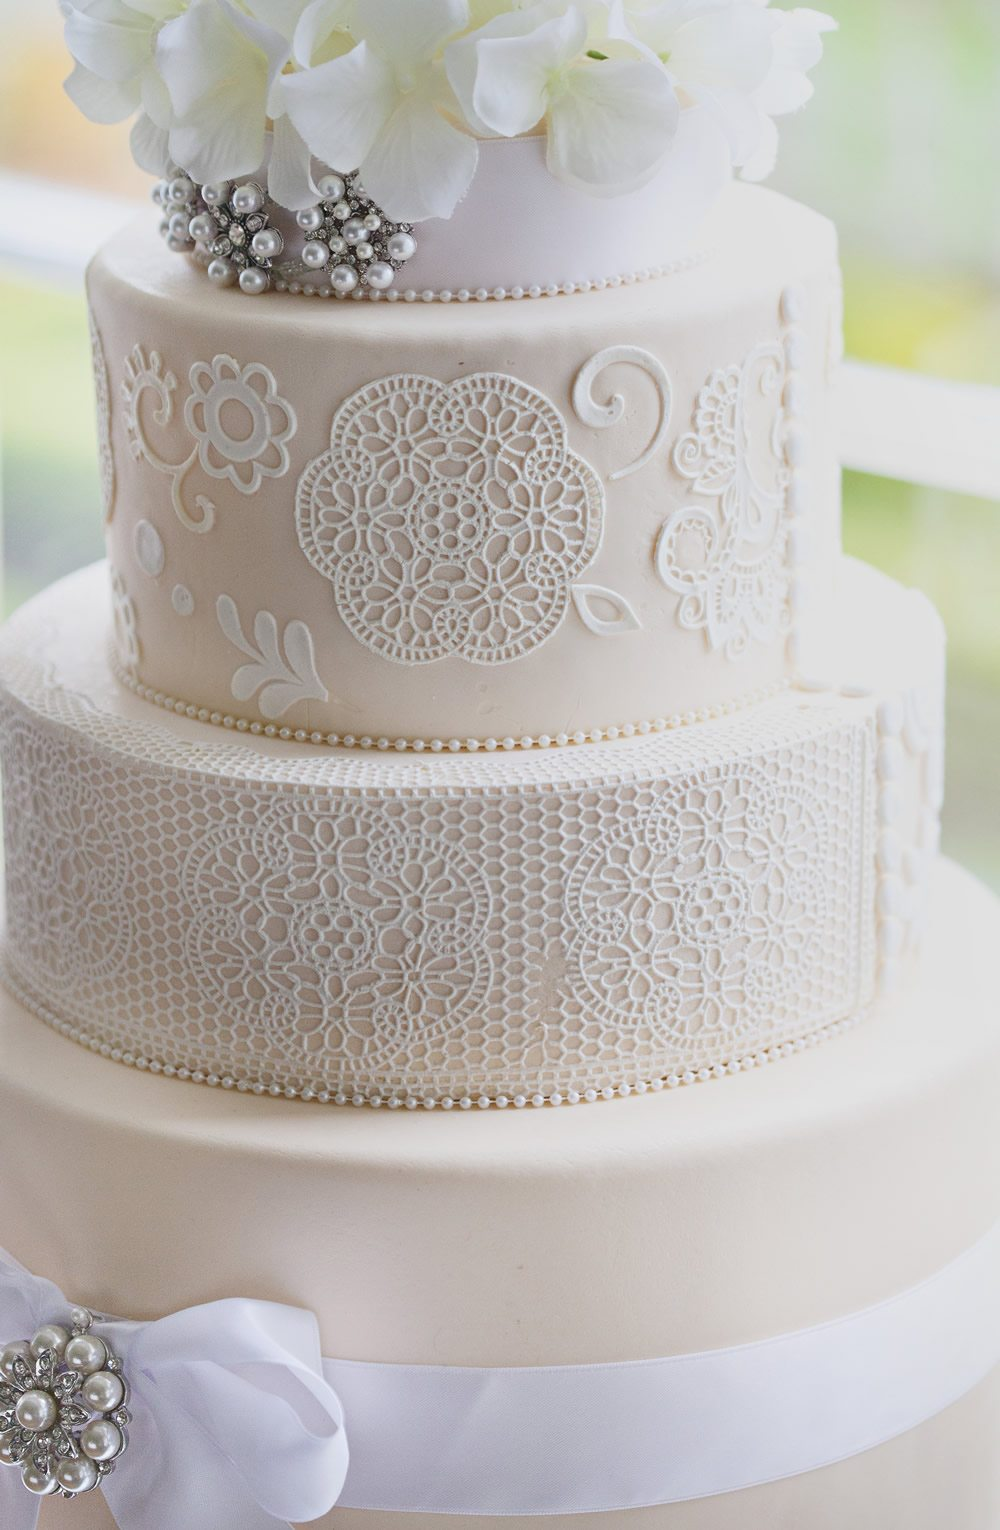 Passion for Cakes | Photo: Passion for Cakes